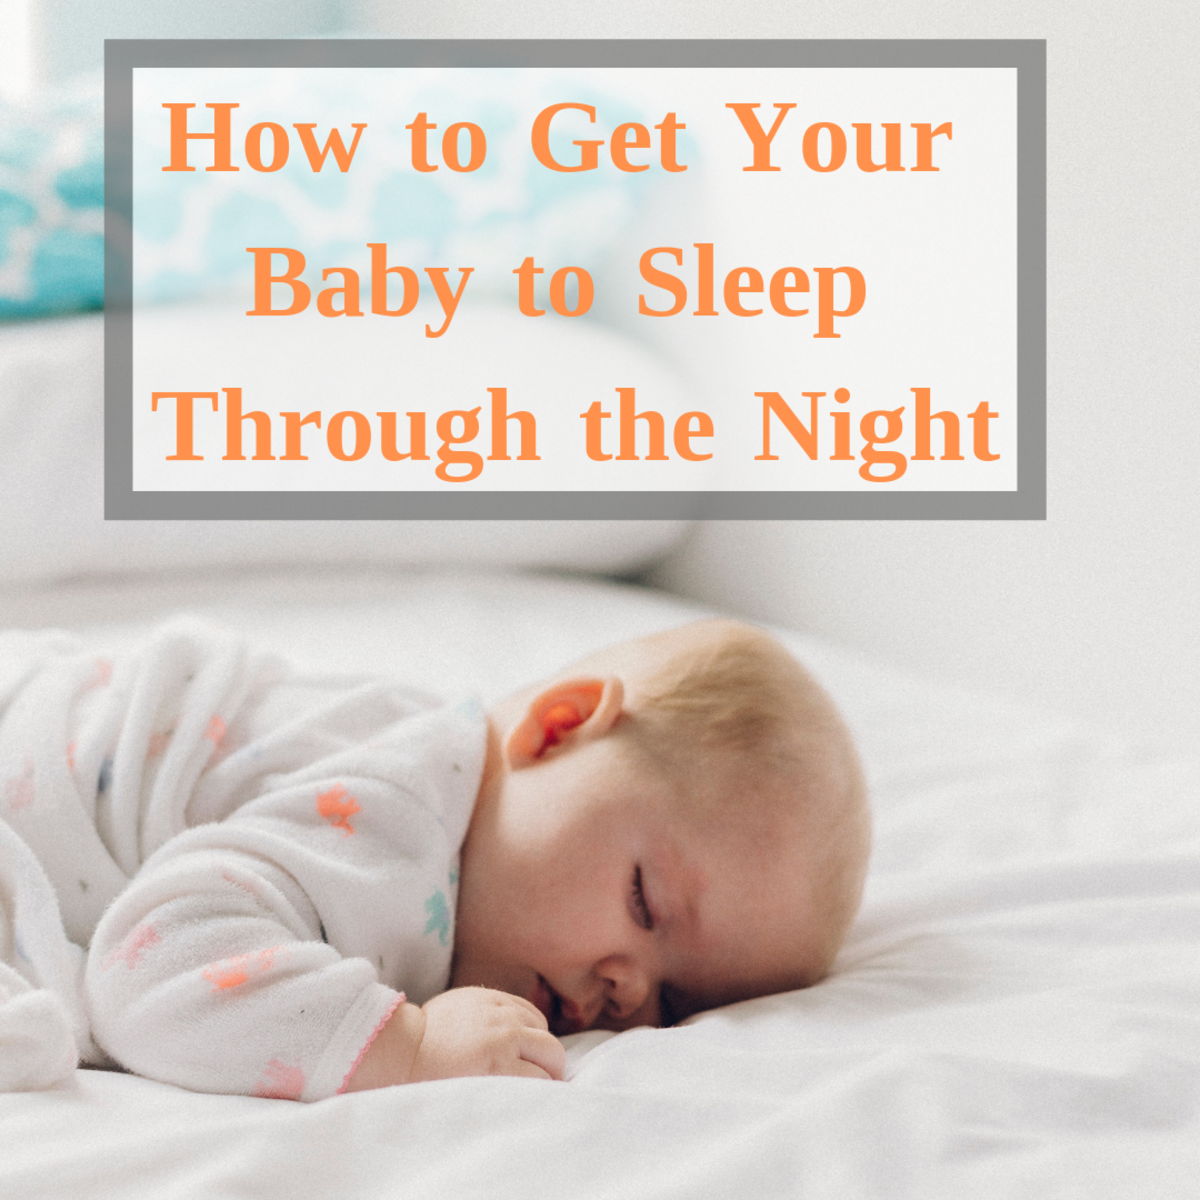 When do babies typically start sleeping through the night